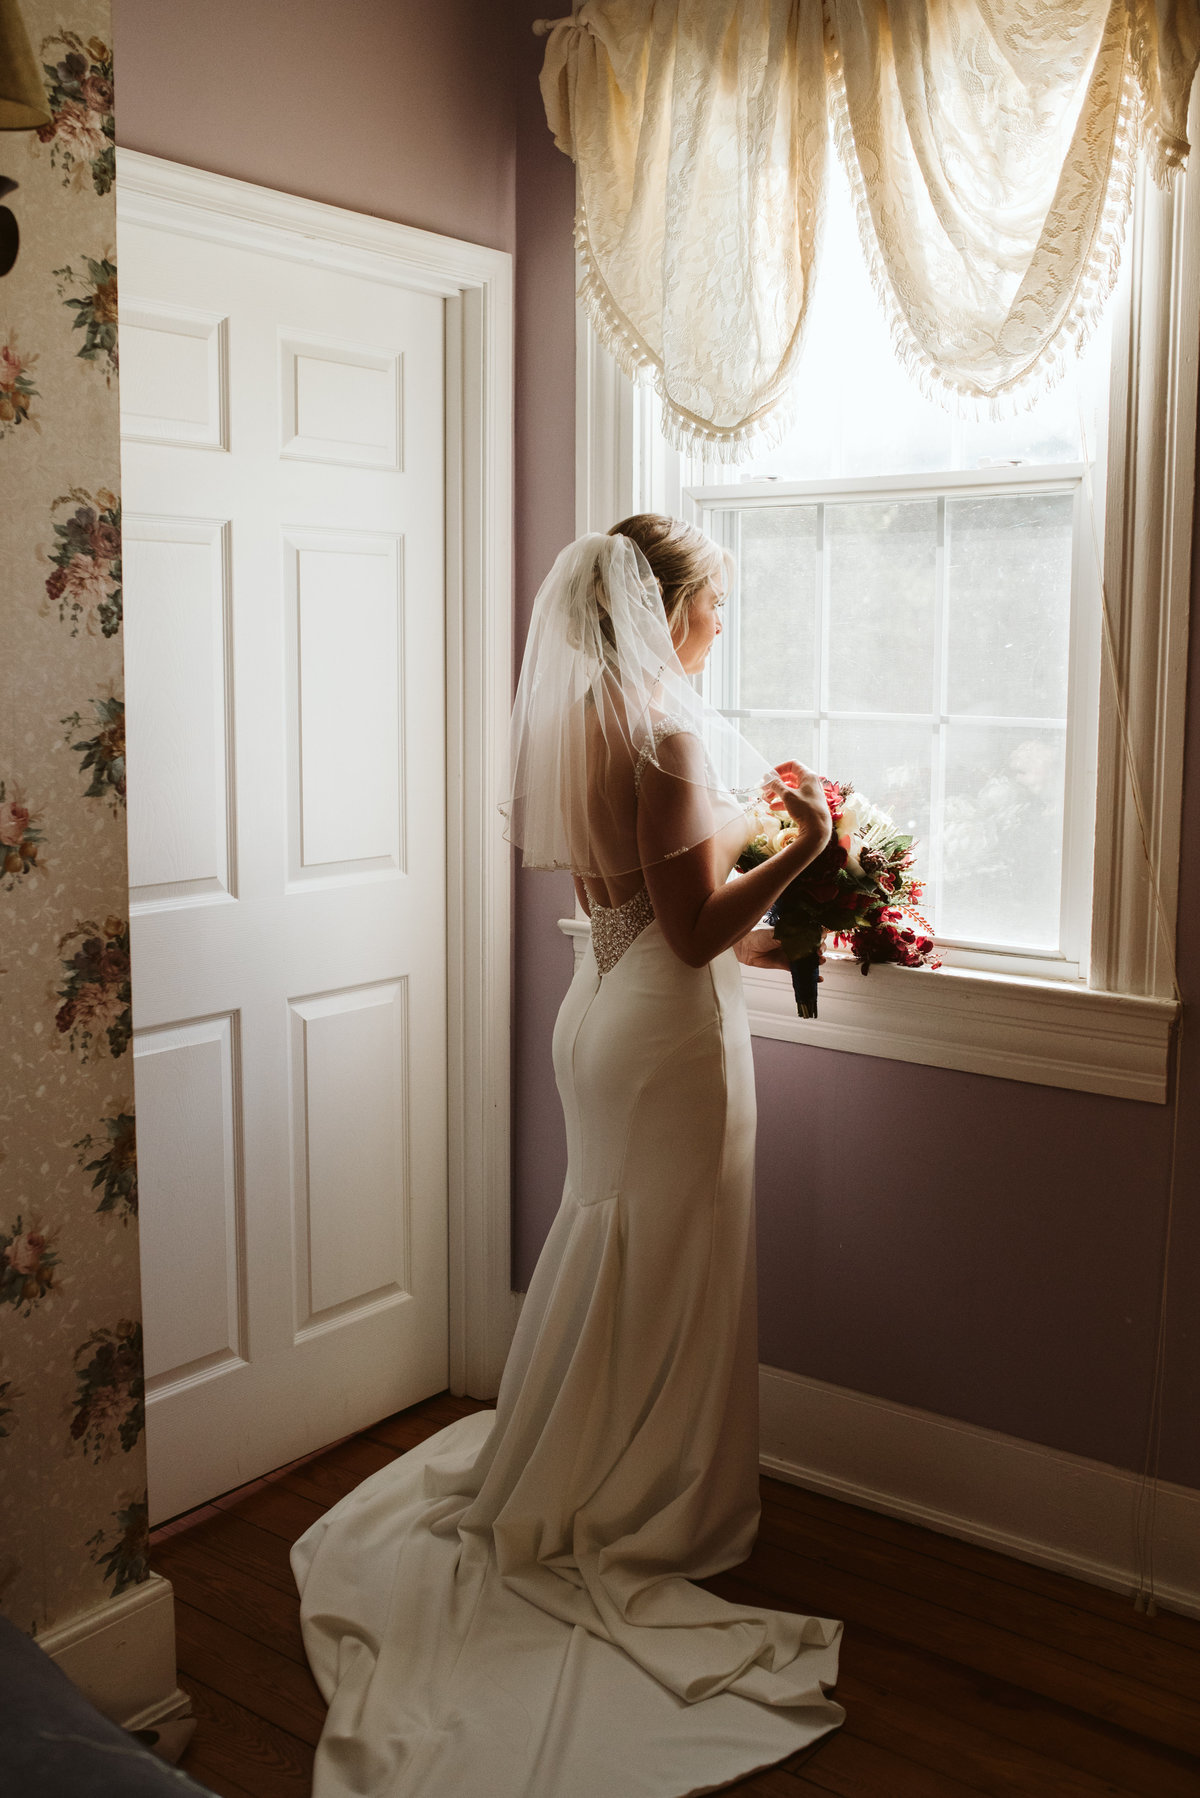 rebeccaburtphotography.MollyandOrreyLloydWedding.WaverlyEstate.Lunenburgwedding-204